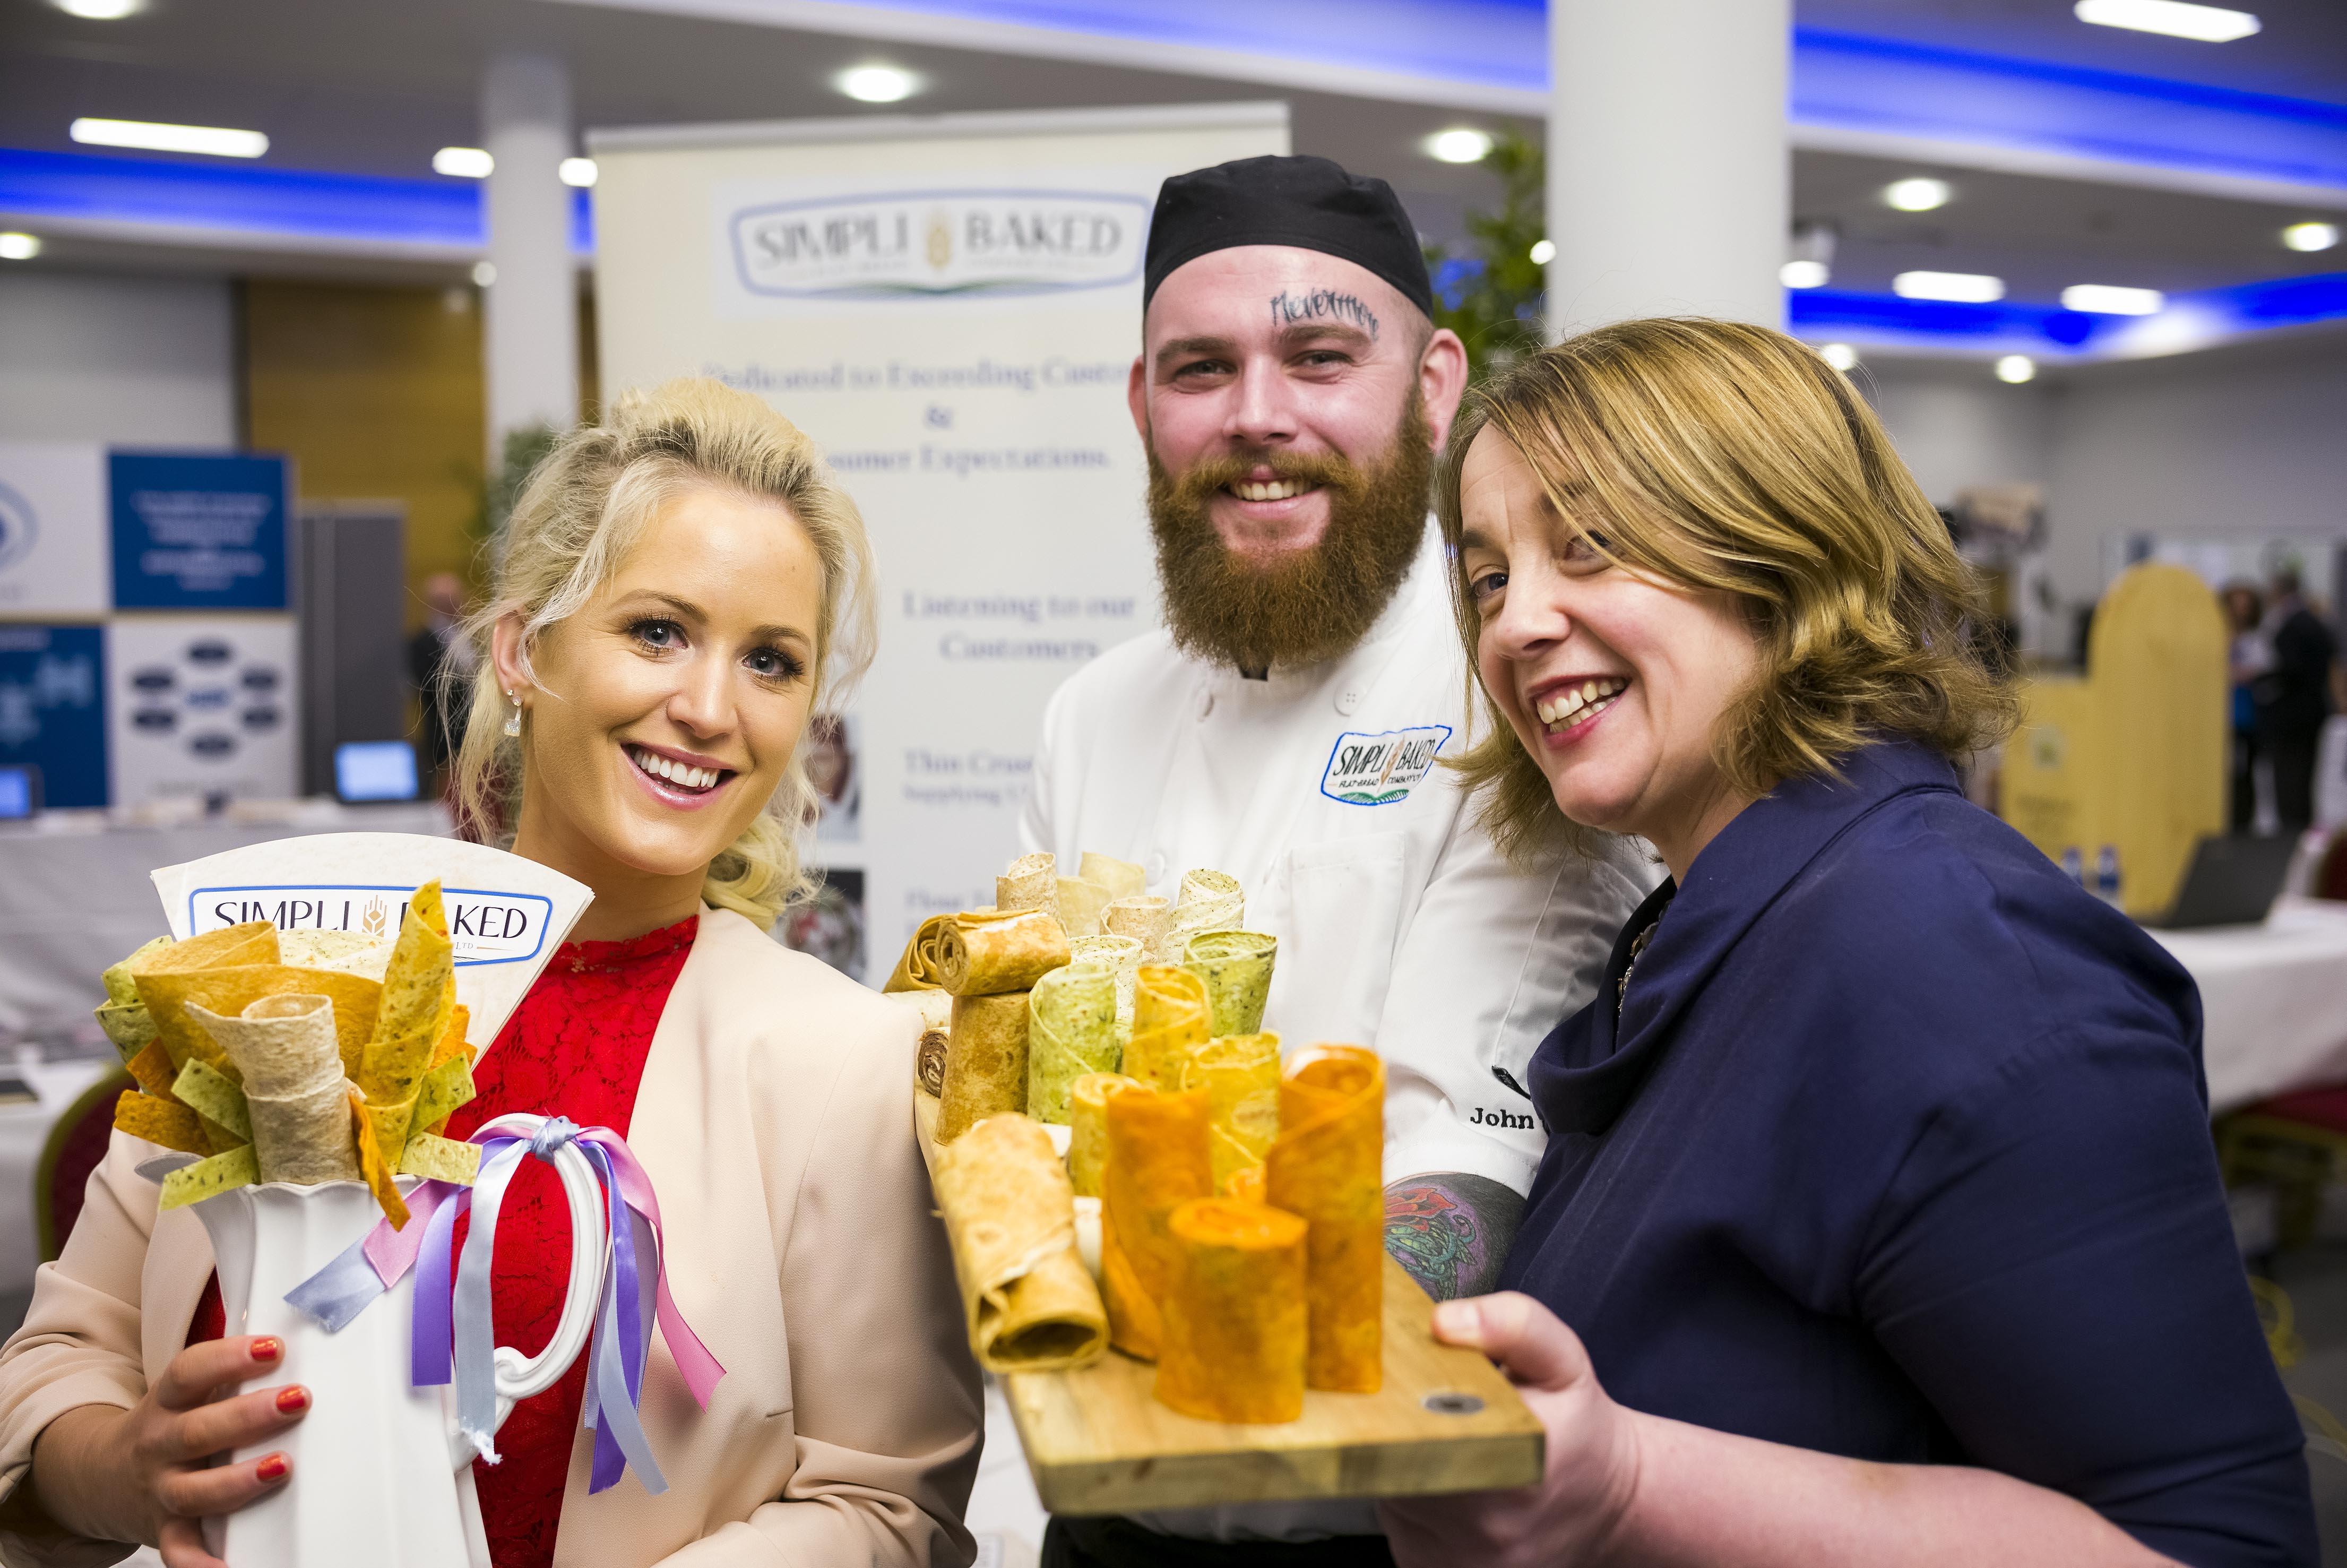 Tullamore-based Simpli Baked could go all the way in SFA National Small Business Awards